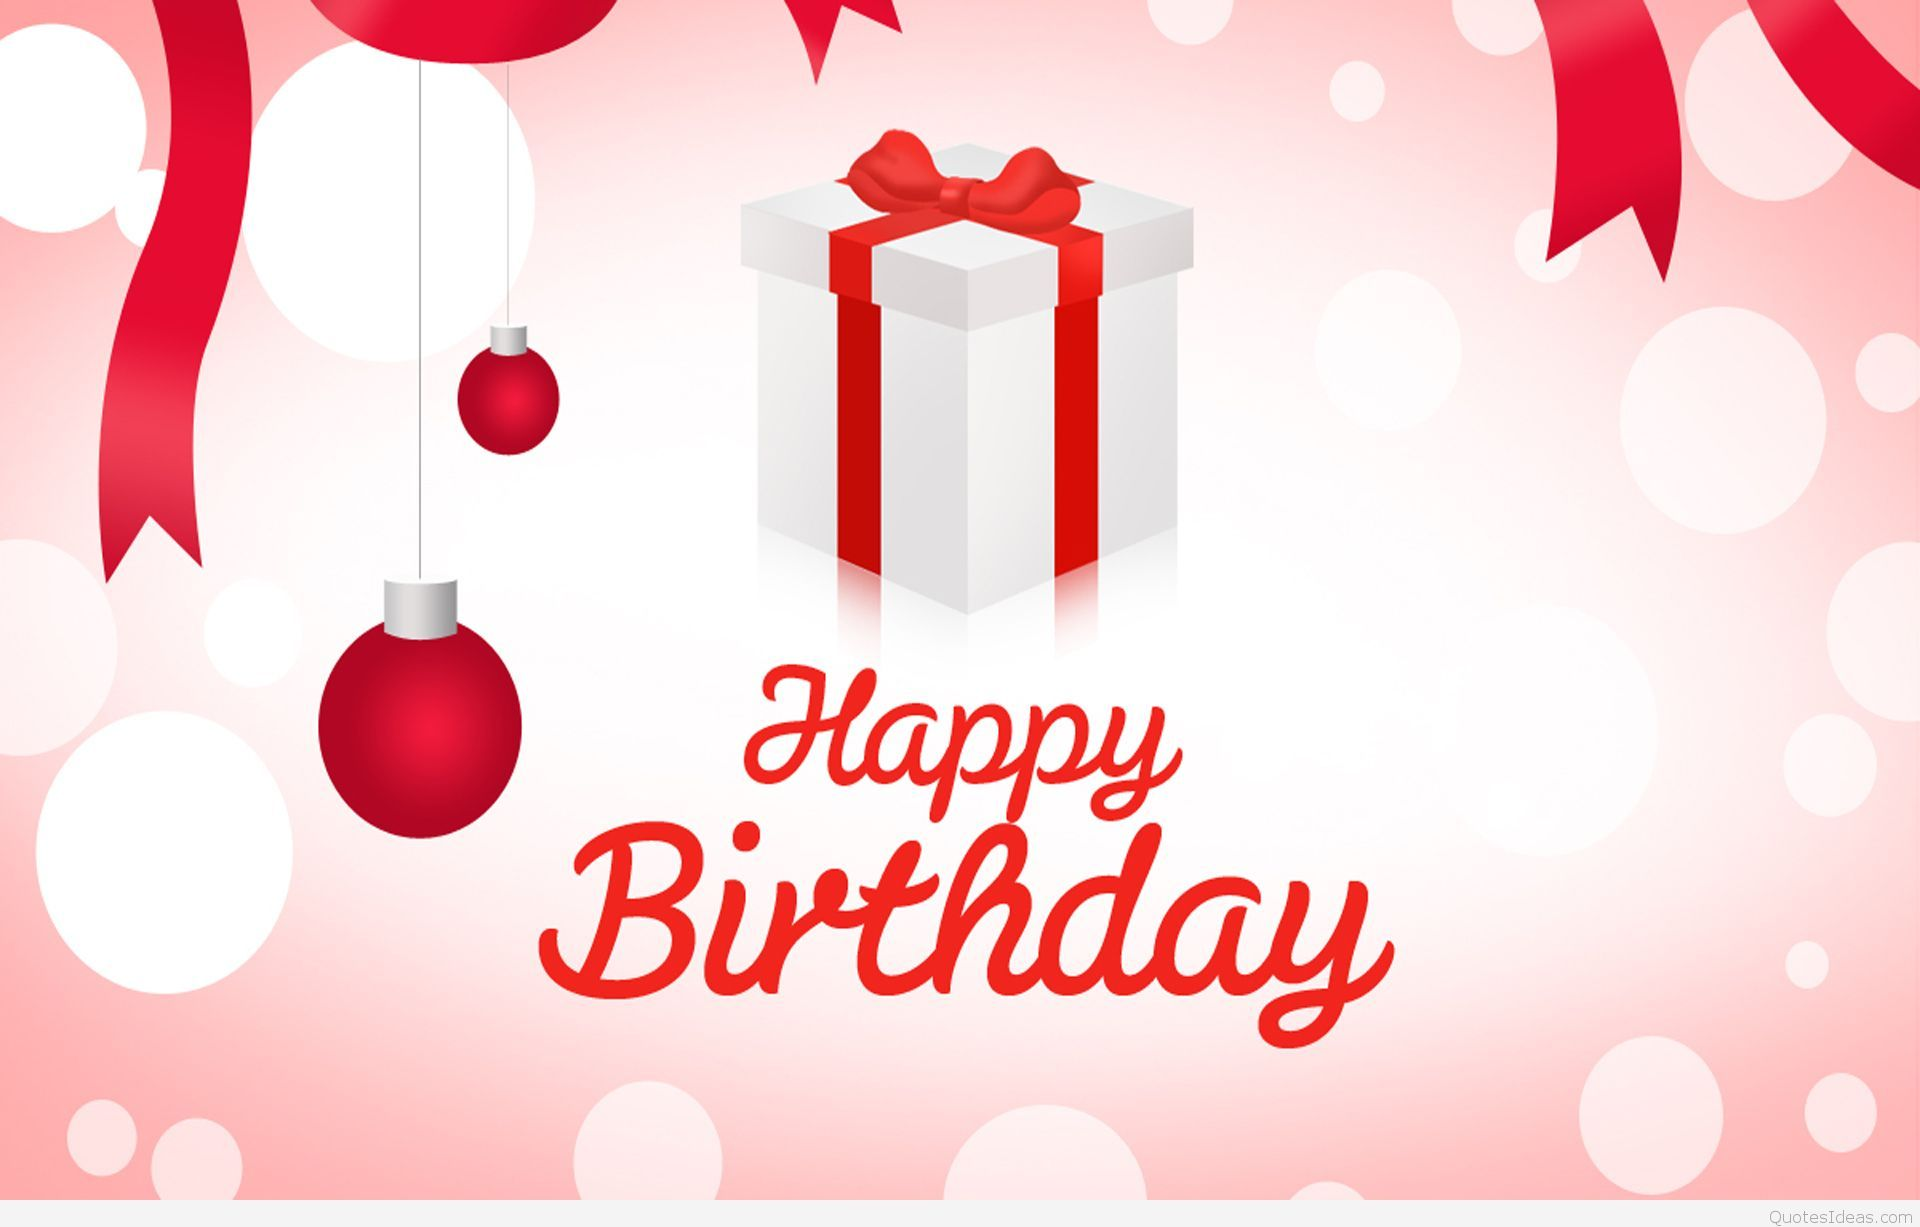 Wonderful Best Cute Happy Birthday Messages Cards Wallpapers Wishes Fdfffdbcebf Bcfad